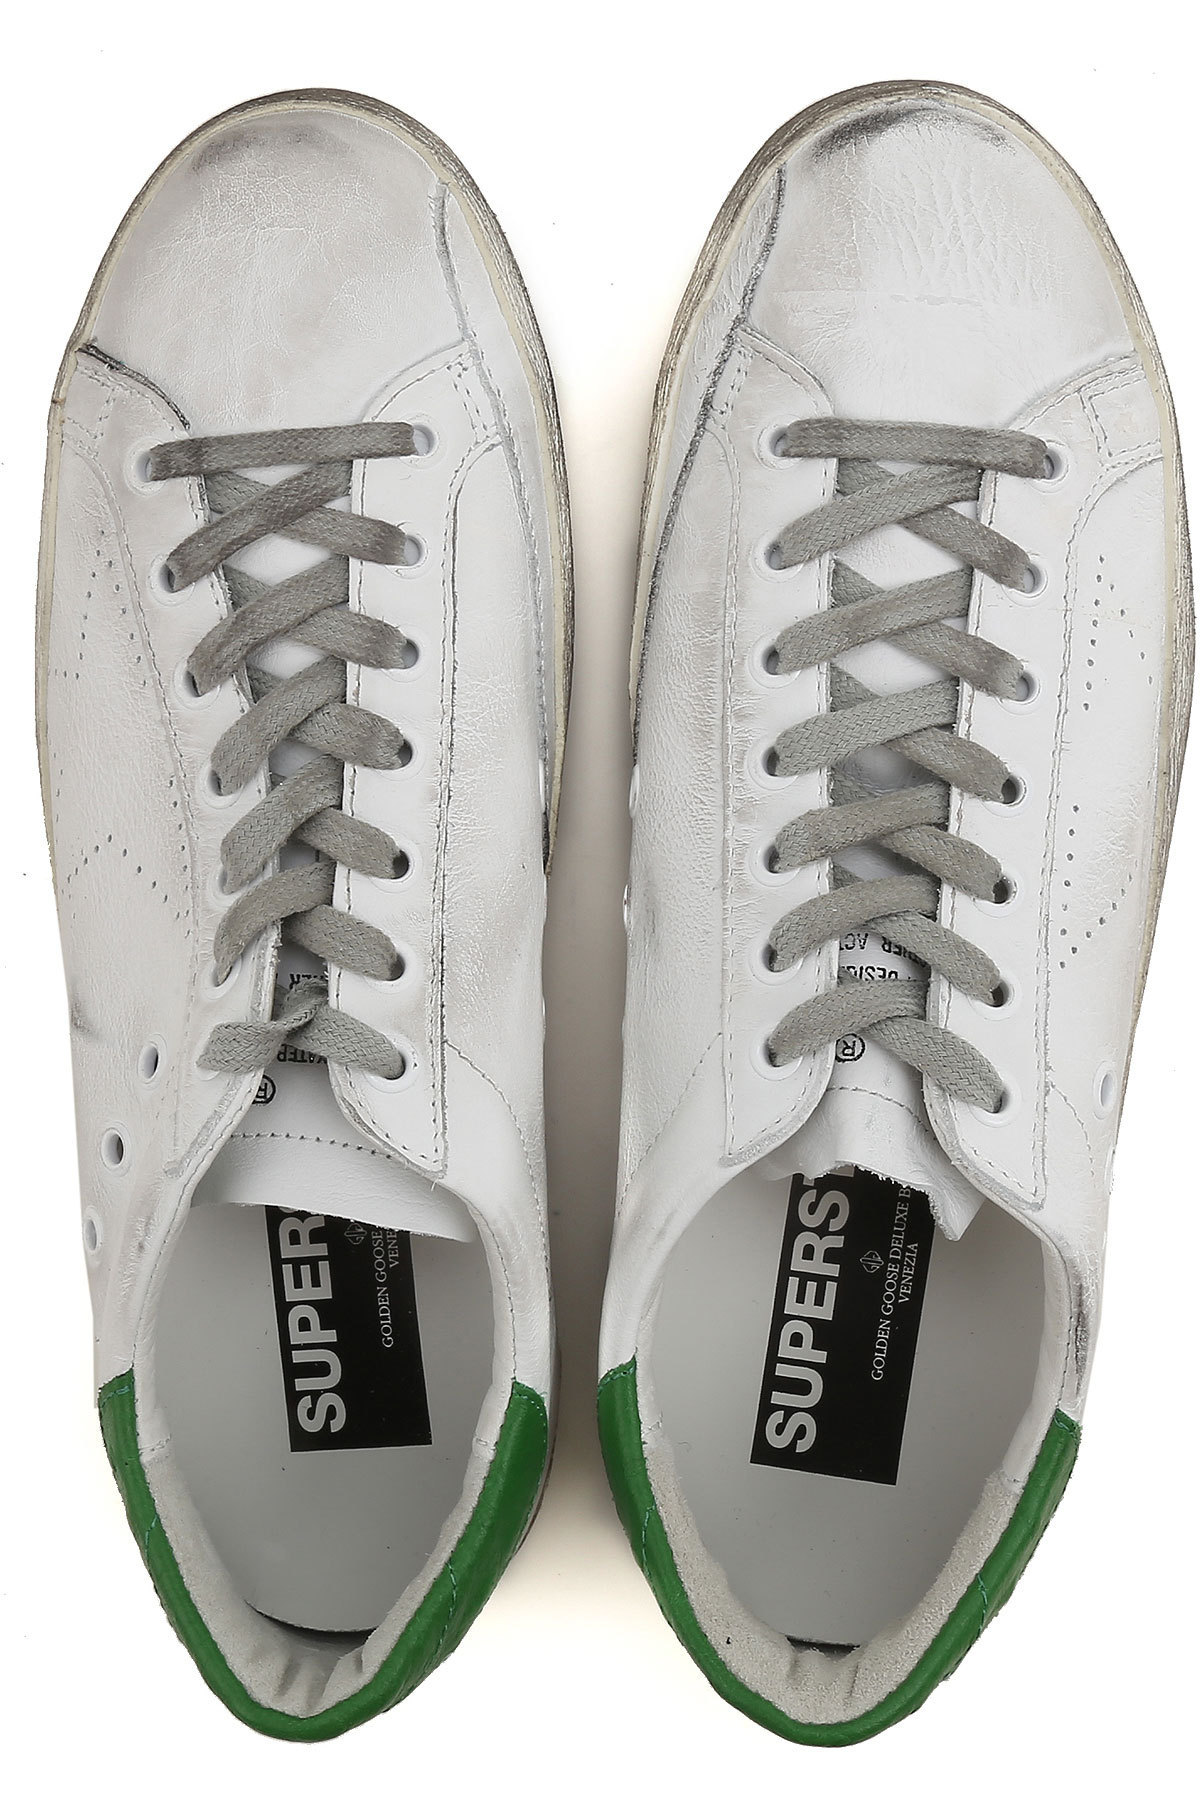 【関税負担】GOLDEN GOOSE SUPERSTAR WHITE/GREEN